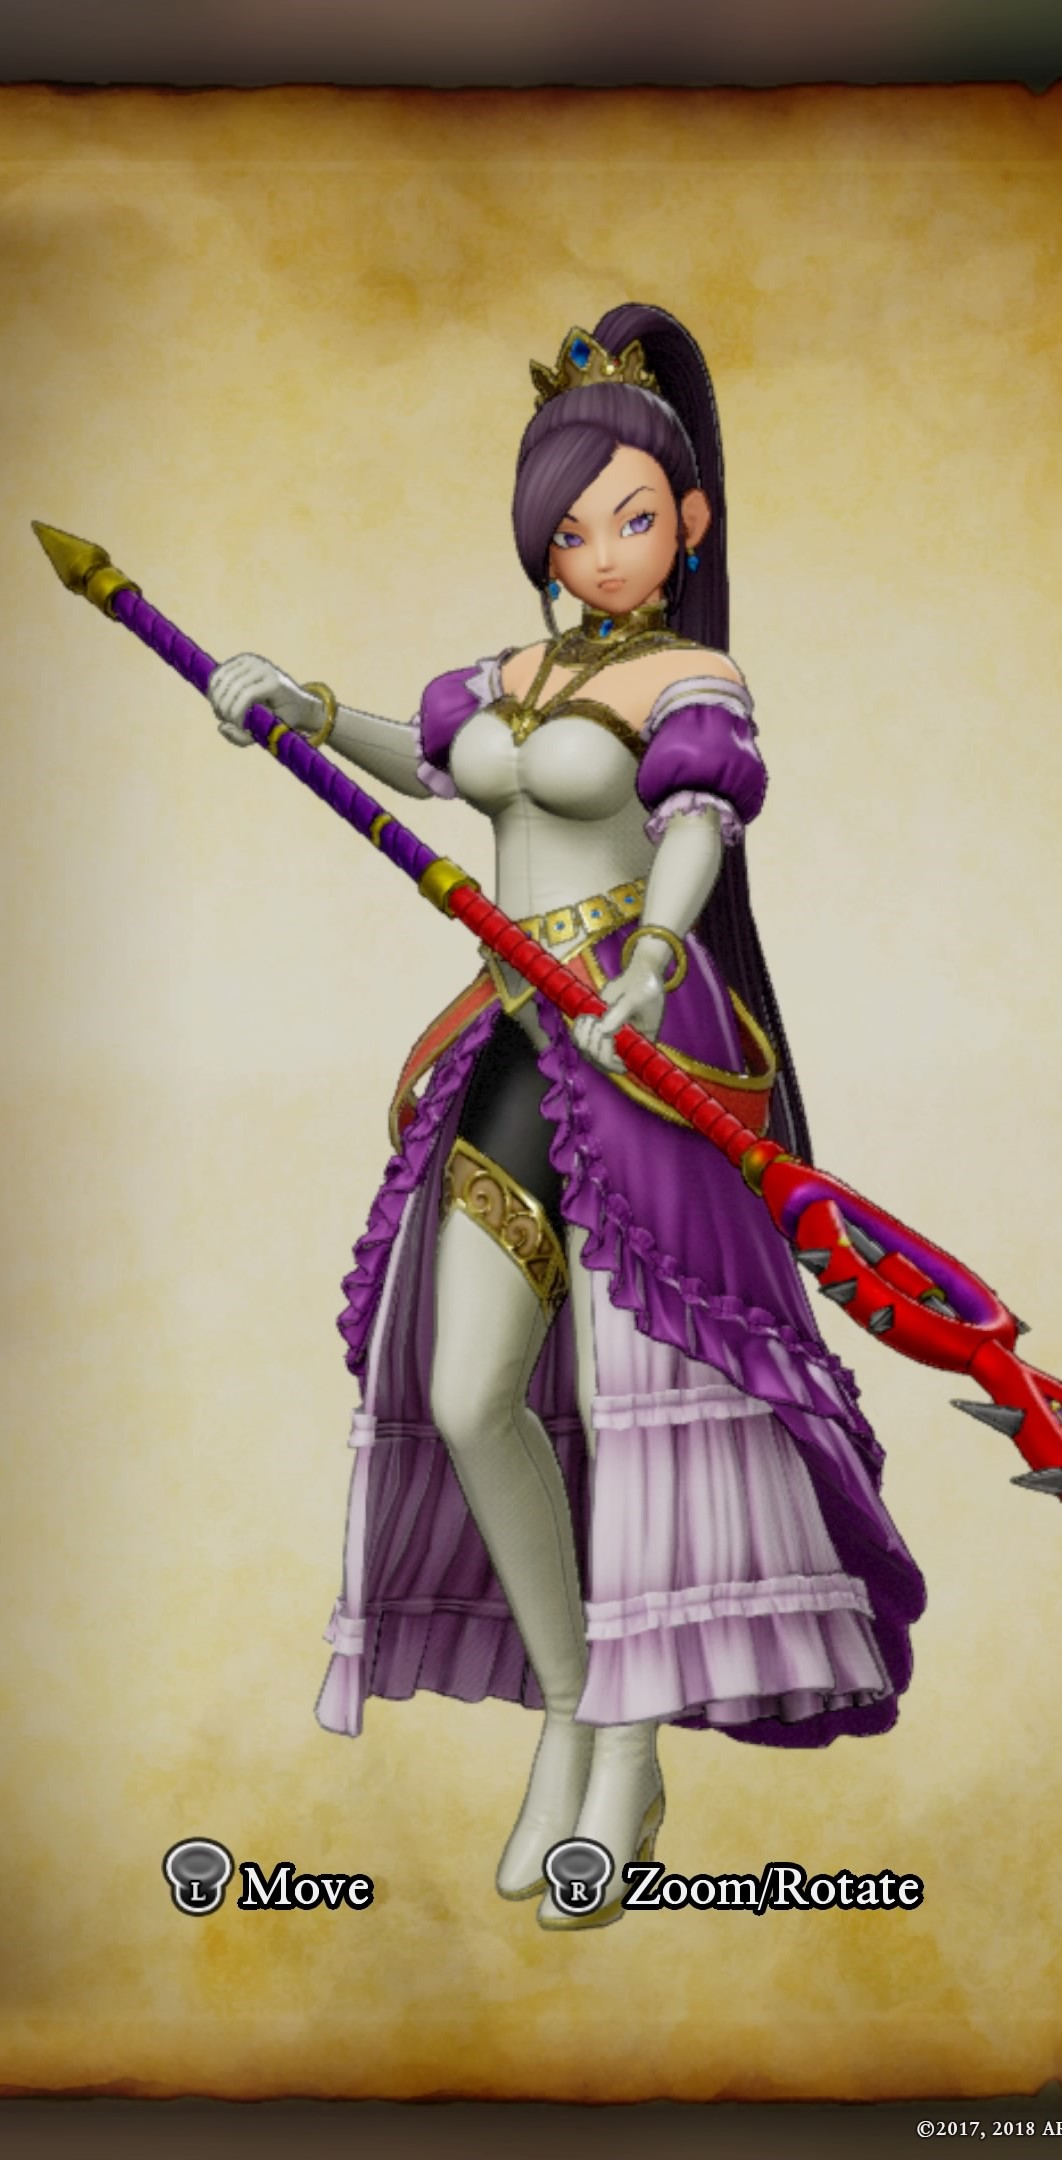 Dragon Quest Xi Costumes Warrior Princess Set Guide Outfits Dedicated